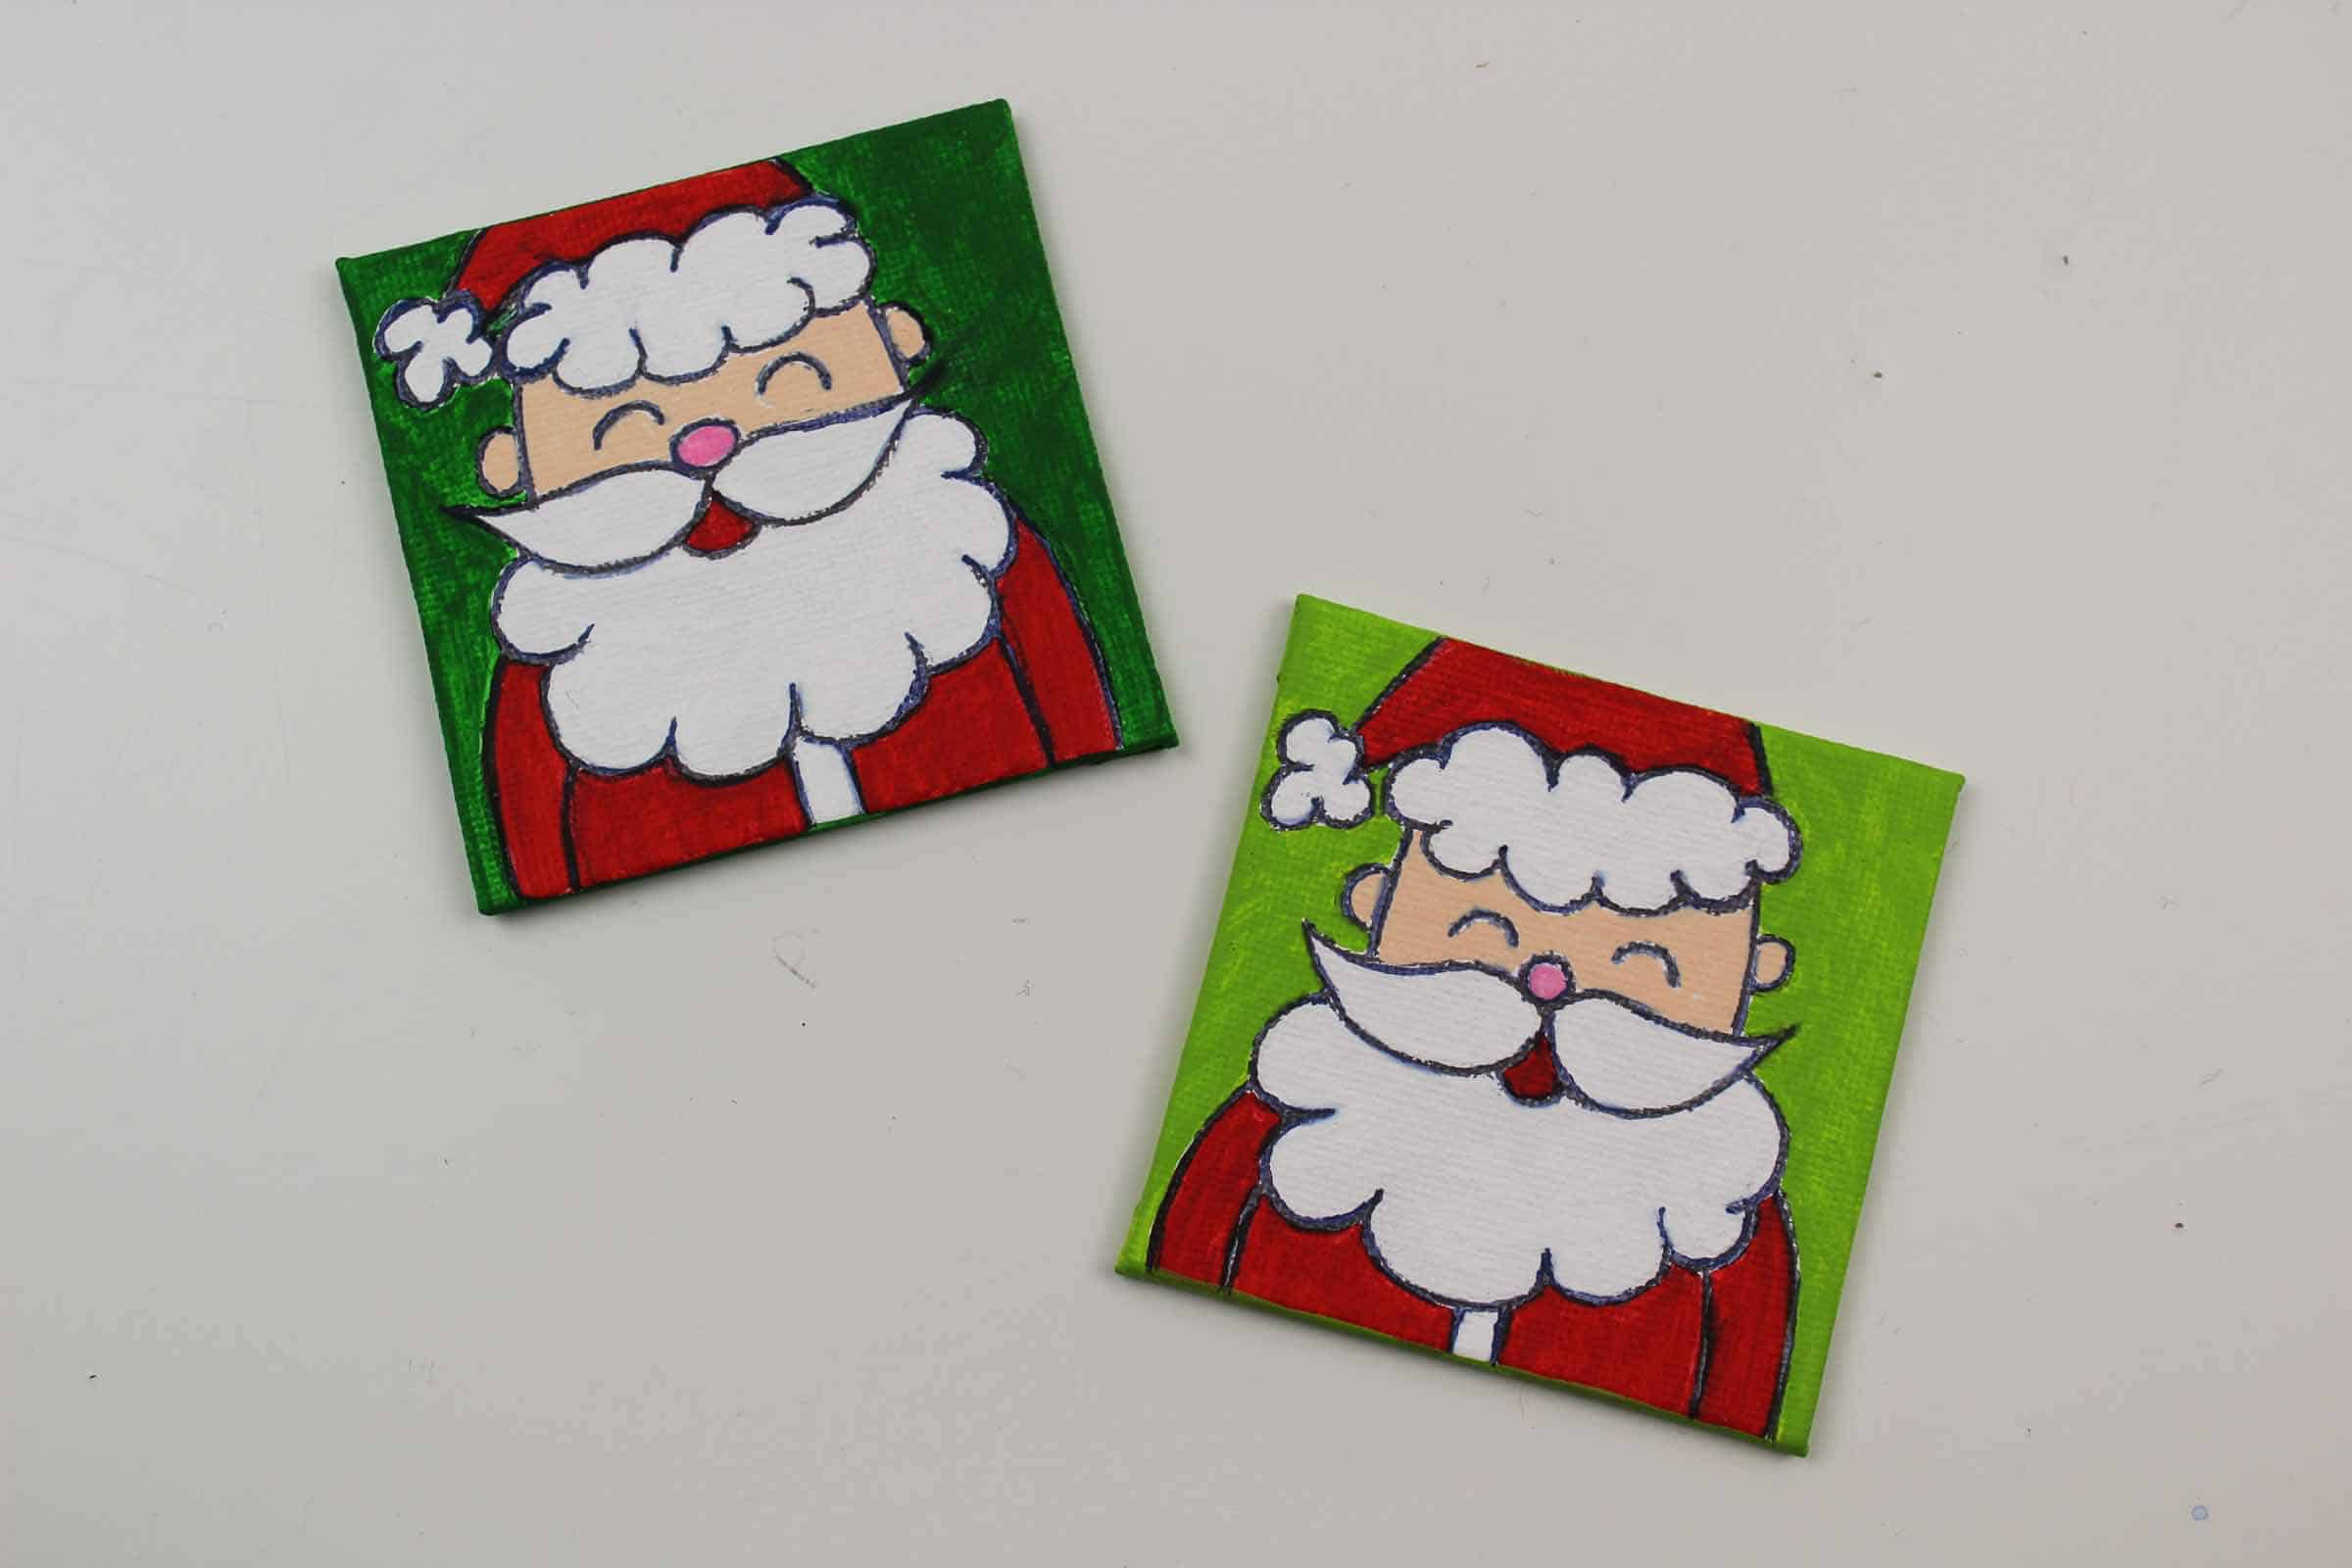 Painted Santa Claus on Canvas